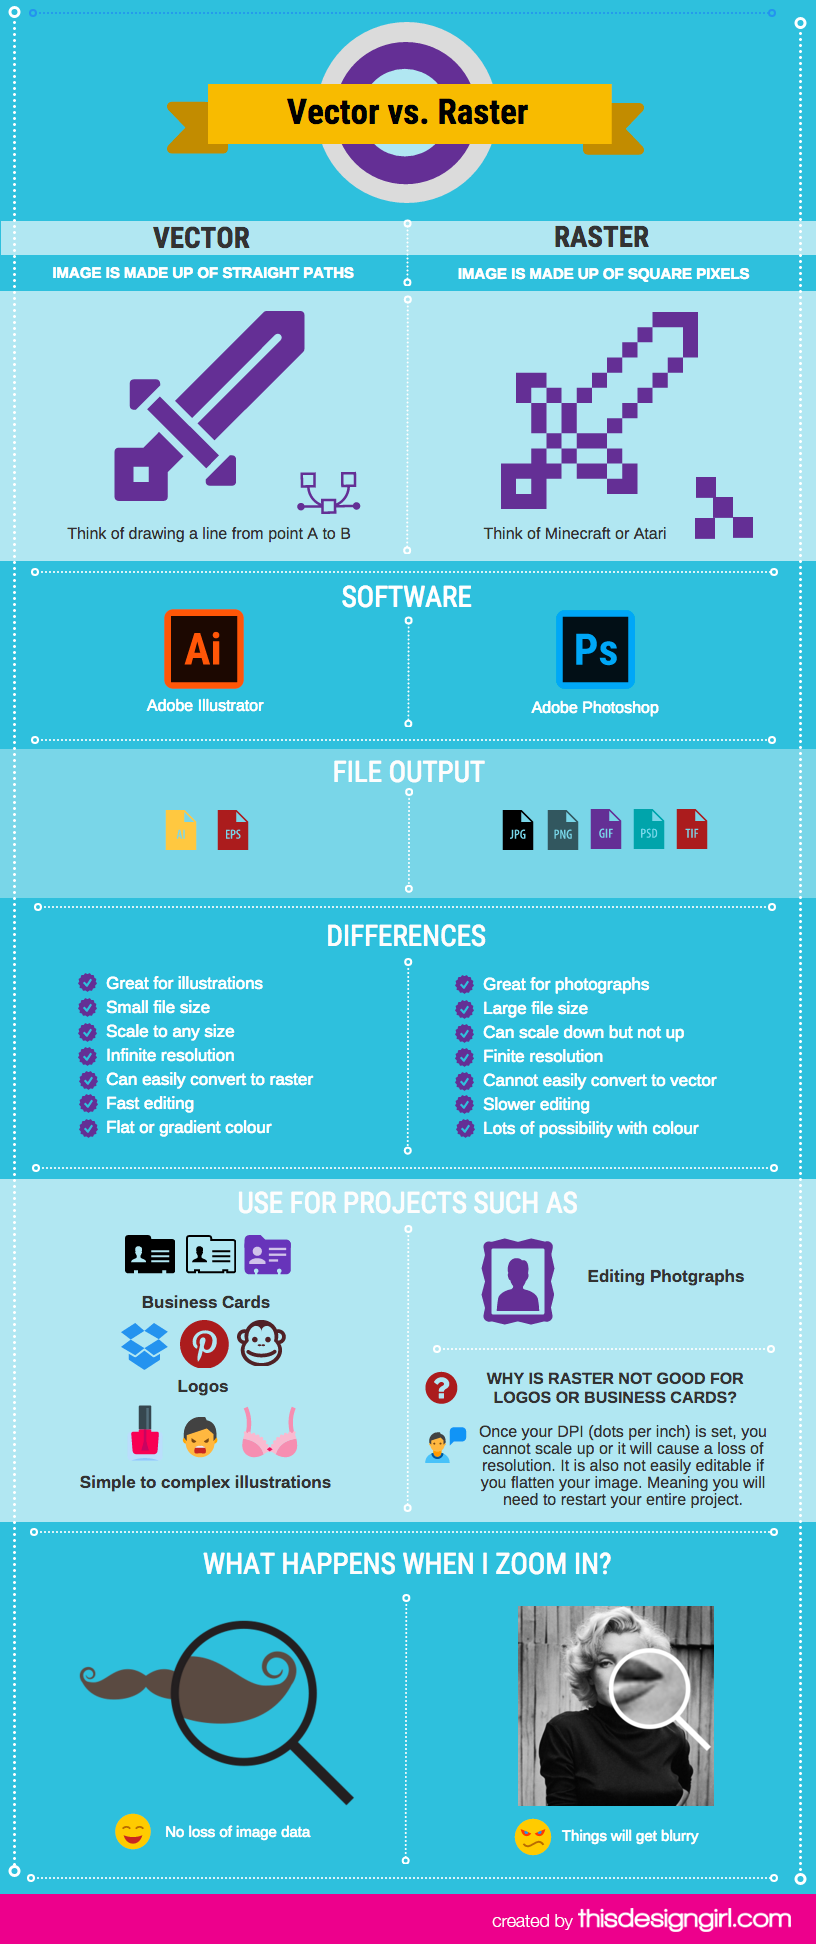 Vector Vs Raster Infographic Many Of My Clients Are A Bit Confused On The Difference Between Vect Raster Vs Vector Learning Graphic Design Graphic Design Memes